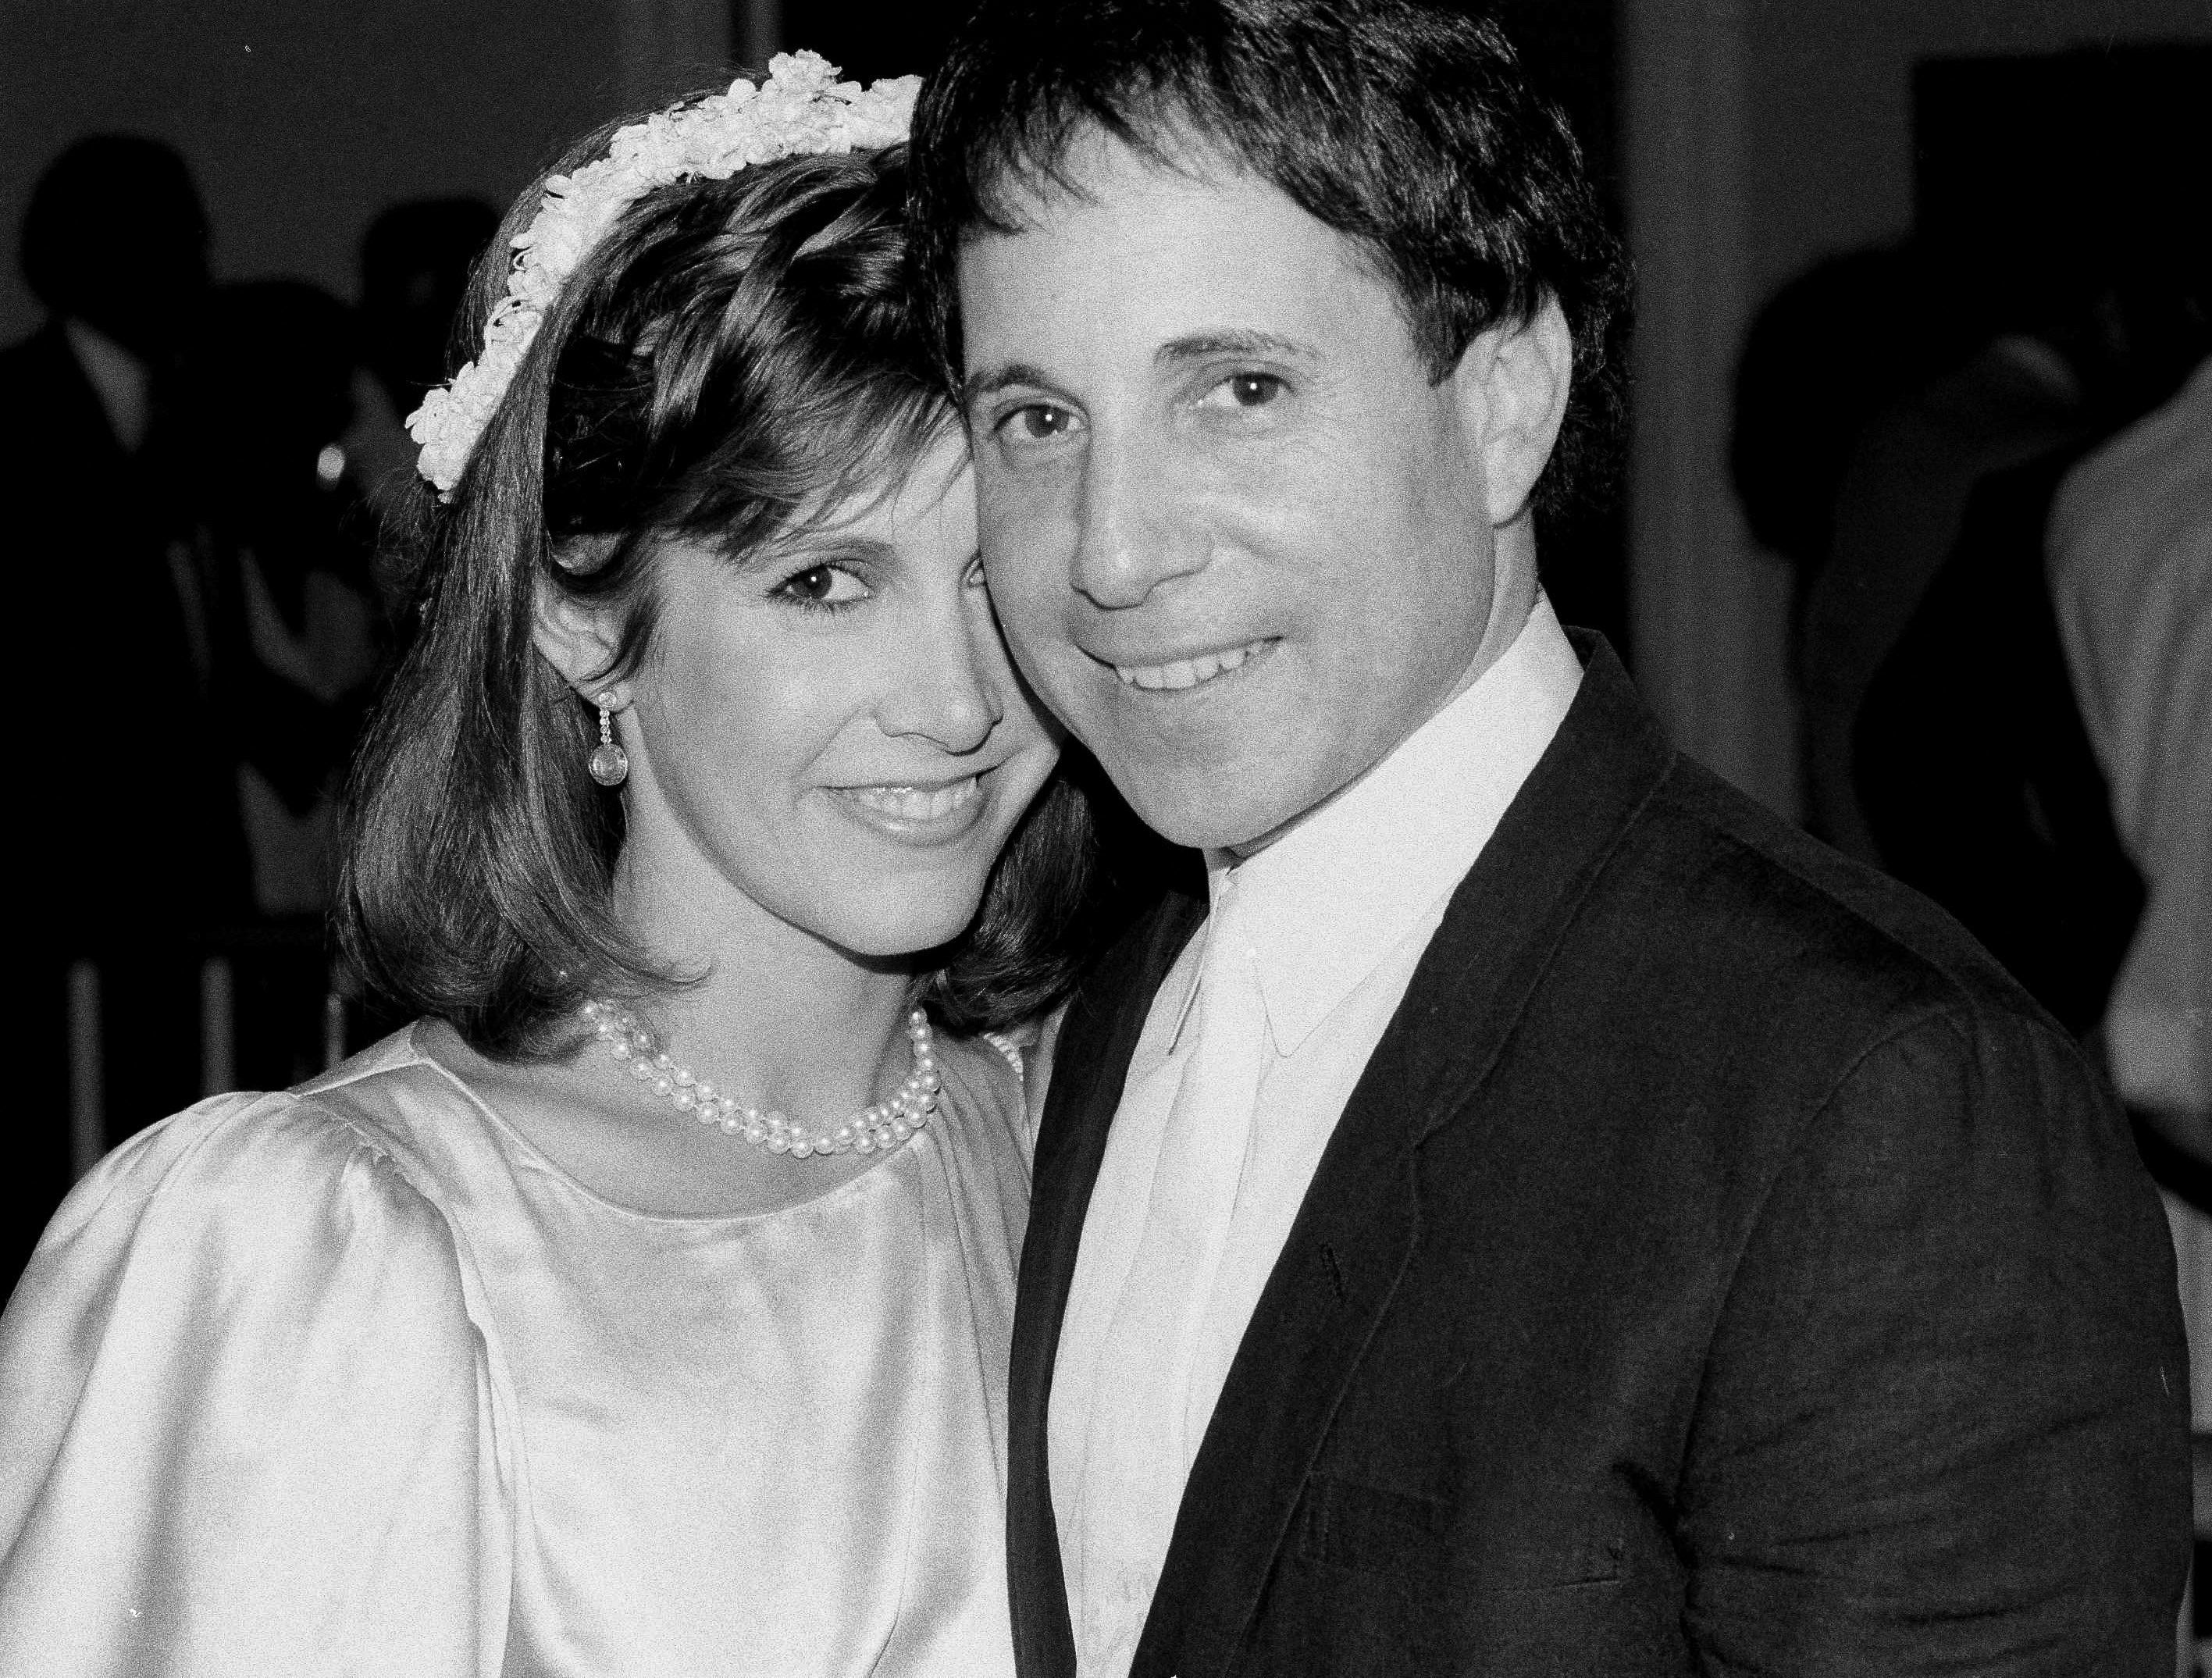 FILE - In this March 11, 1982 file photo, actress Carrie Fisher and singer-composer Paul Simon leave the Cathedral of St. John the Divine in New York, after a memorial service for comedian John Belushi. On Tuesday, Dec. 27, 2016, a publicist says Fisher has died at the age of 60. (AP Photo/Marty Lederhandler, File)